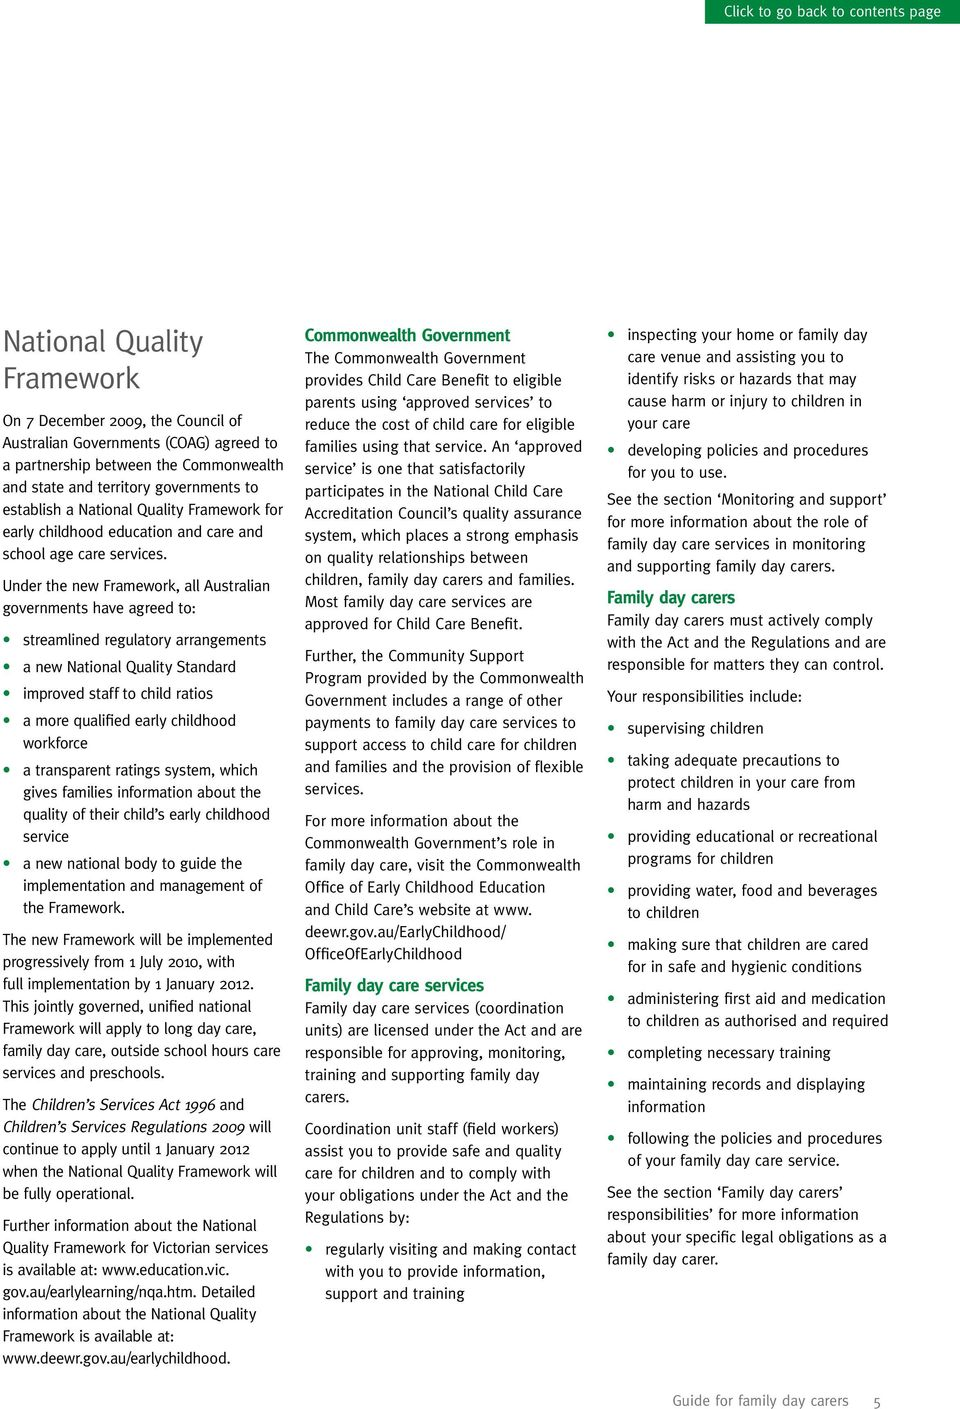 Under the new Framework, all Australian governments have agreed to: streamlined regulatory arrangements a new National Quality Standard improved staff to child ratios a more qualified early childhood